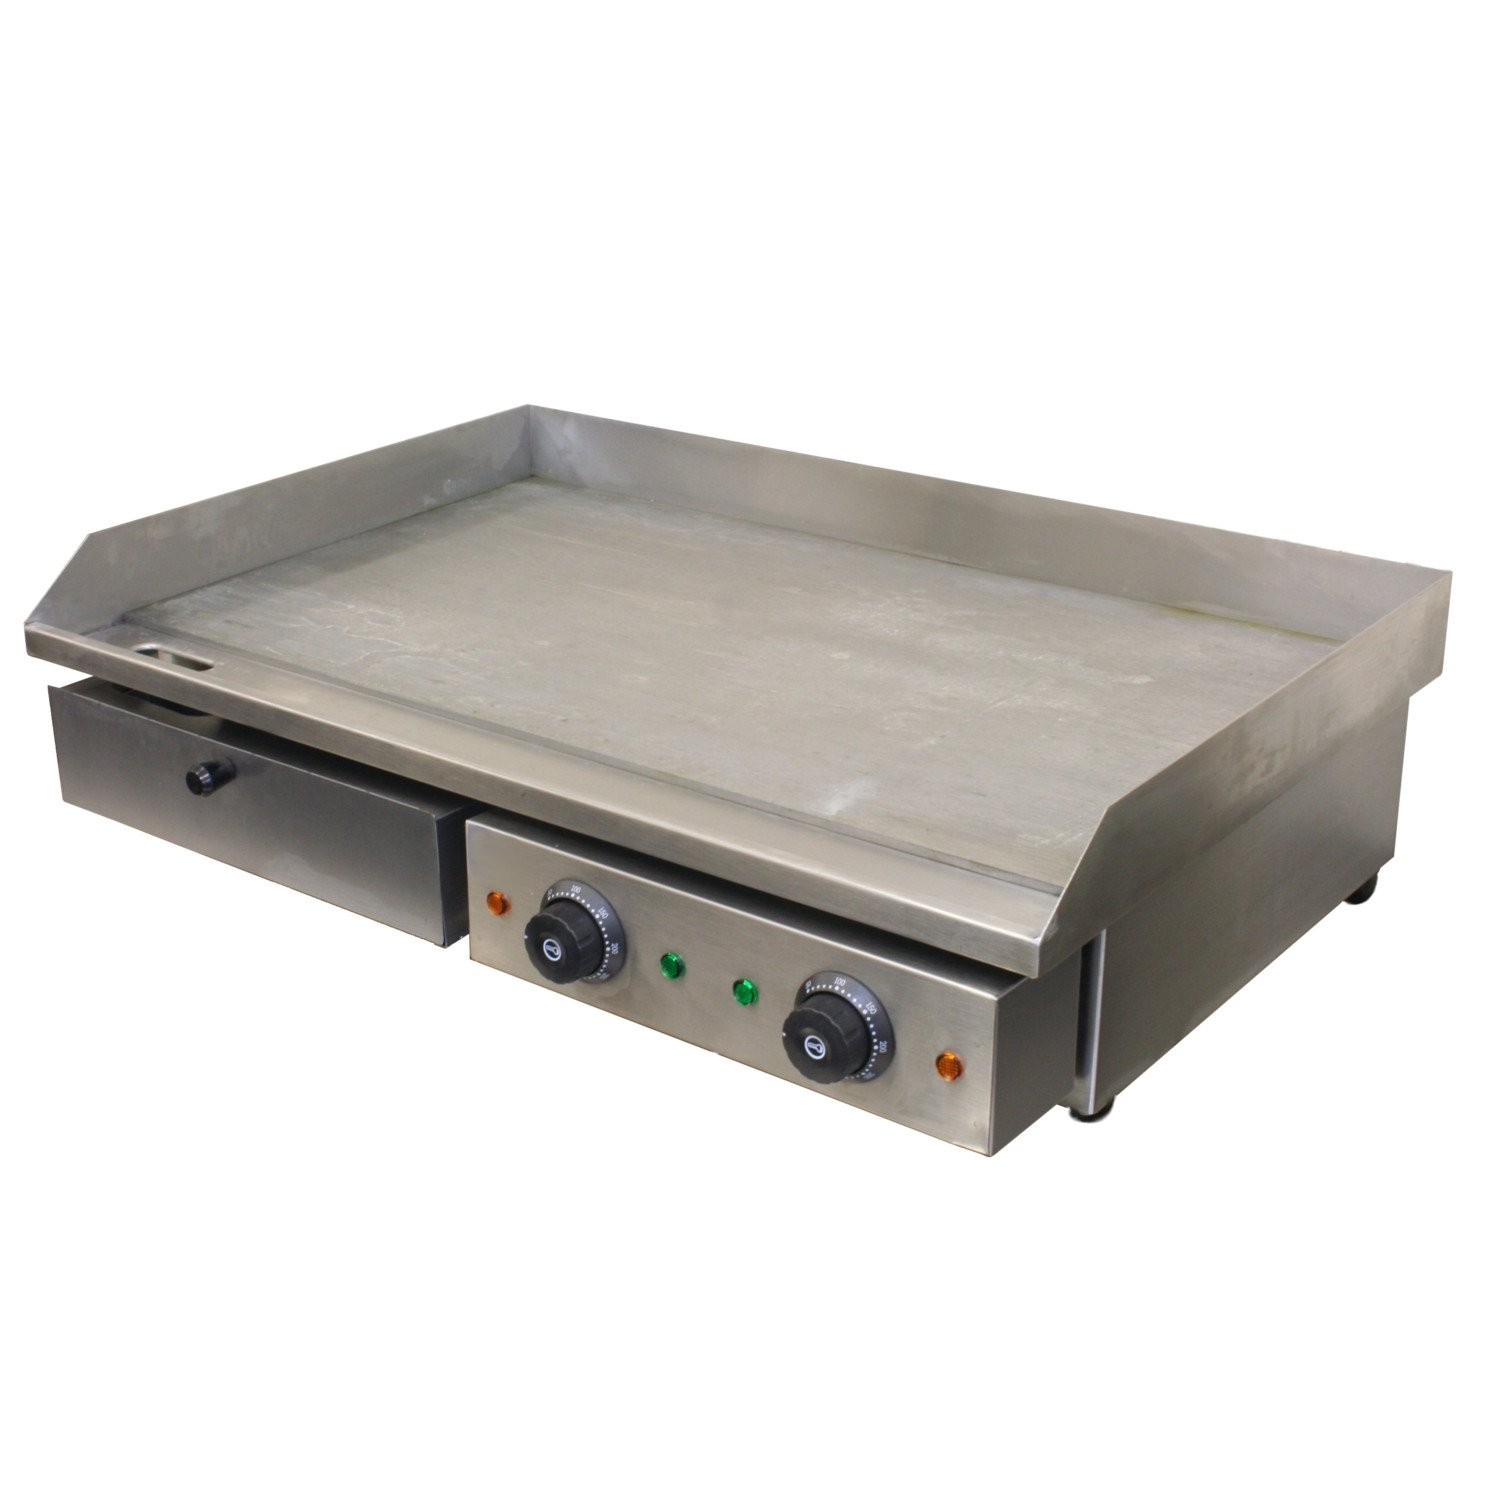 Chef-Hub Commercial Double Sided Counter Top Electric Stainless Steel Griddle/Flat Hotplate/Barbeque Griddle/Kitchen Grill/Fried Pans - 4.4Kw Ideal for Eggs, Bacon, and Sausages Etc.